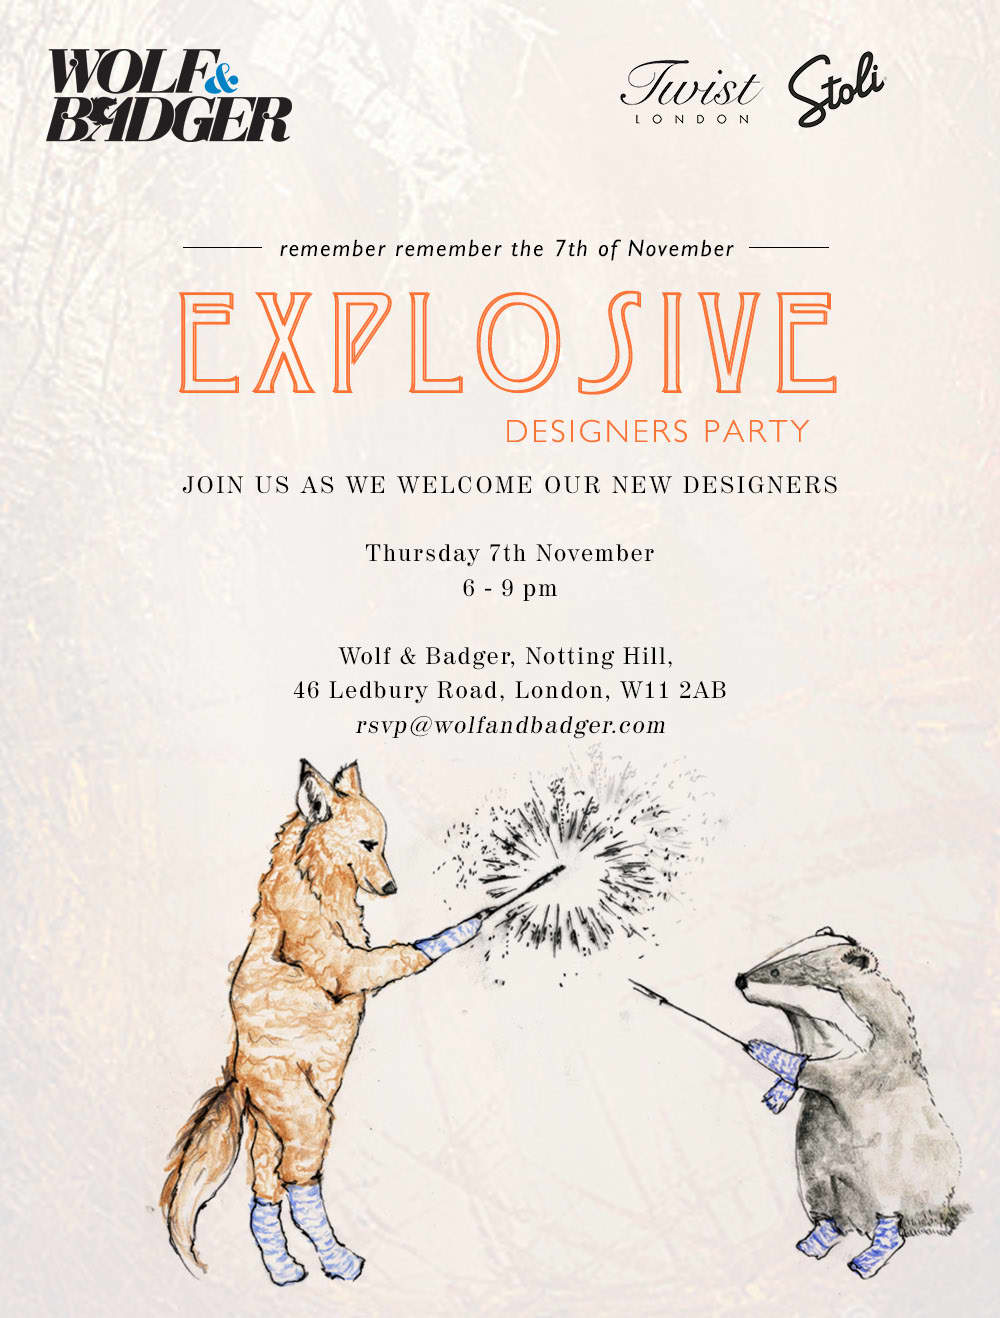 Wolf & Badger's Explosive New Designers Party